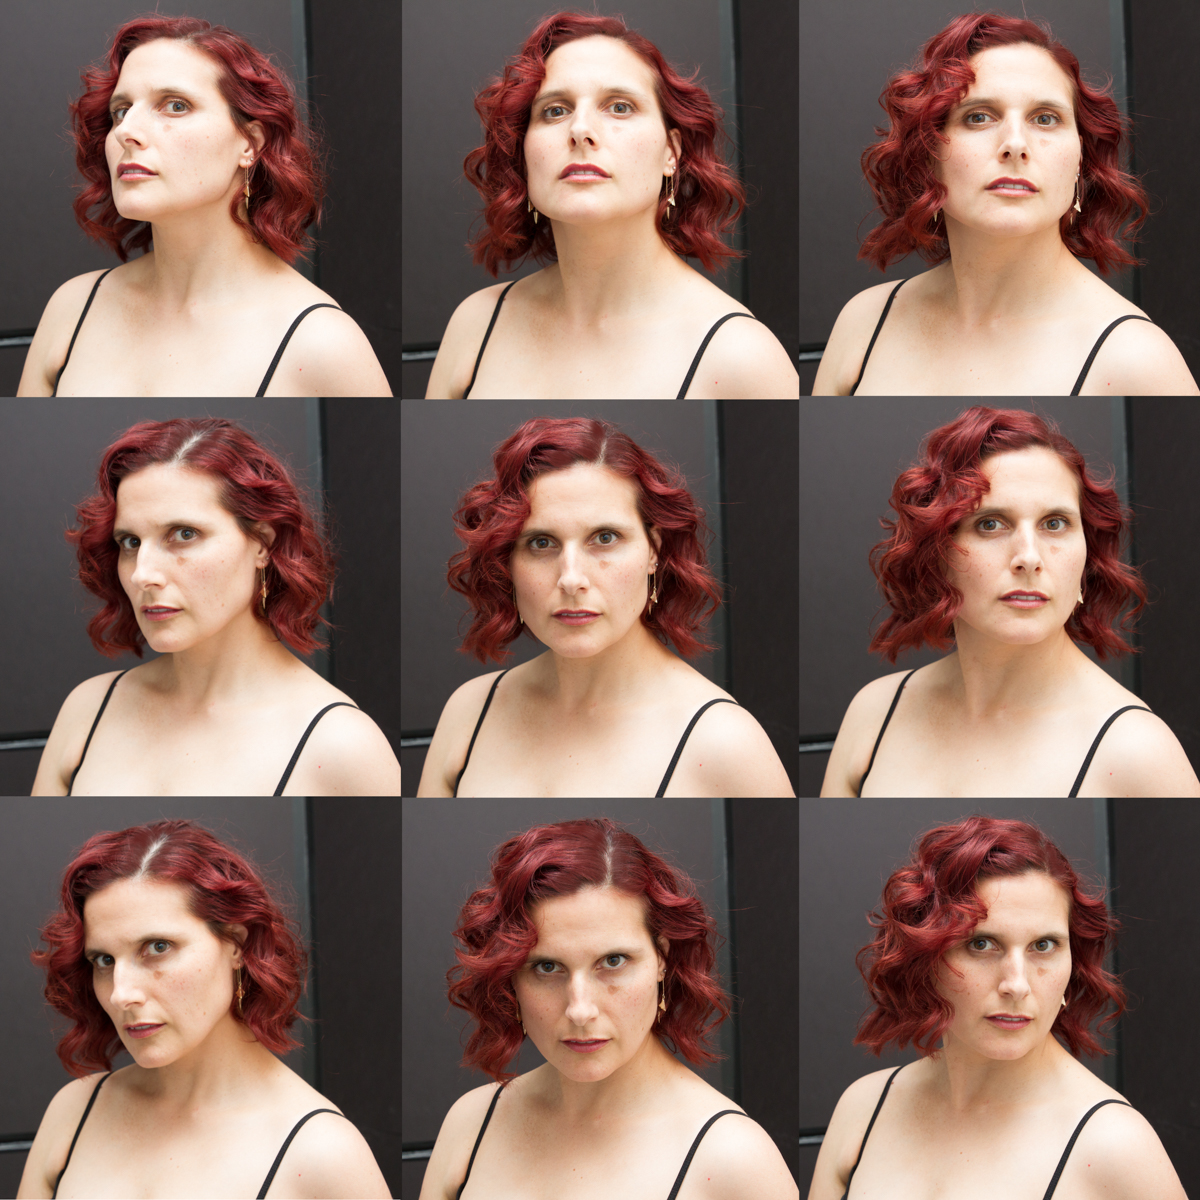 fig 1: Different chin angles. Note that tilting my chin down creates a narrower face and softens my square jawline.